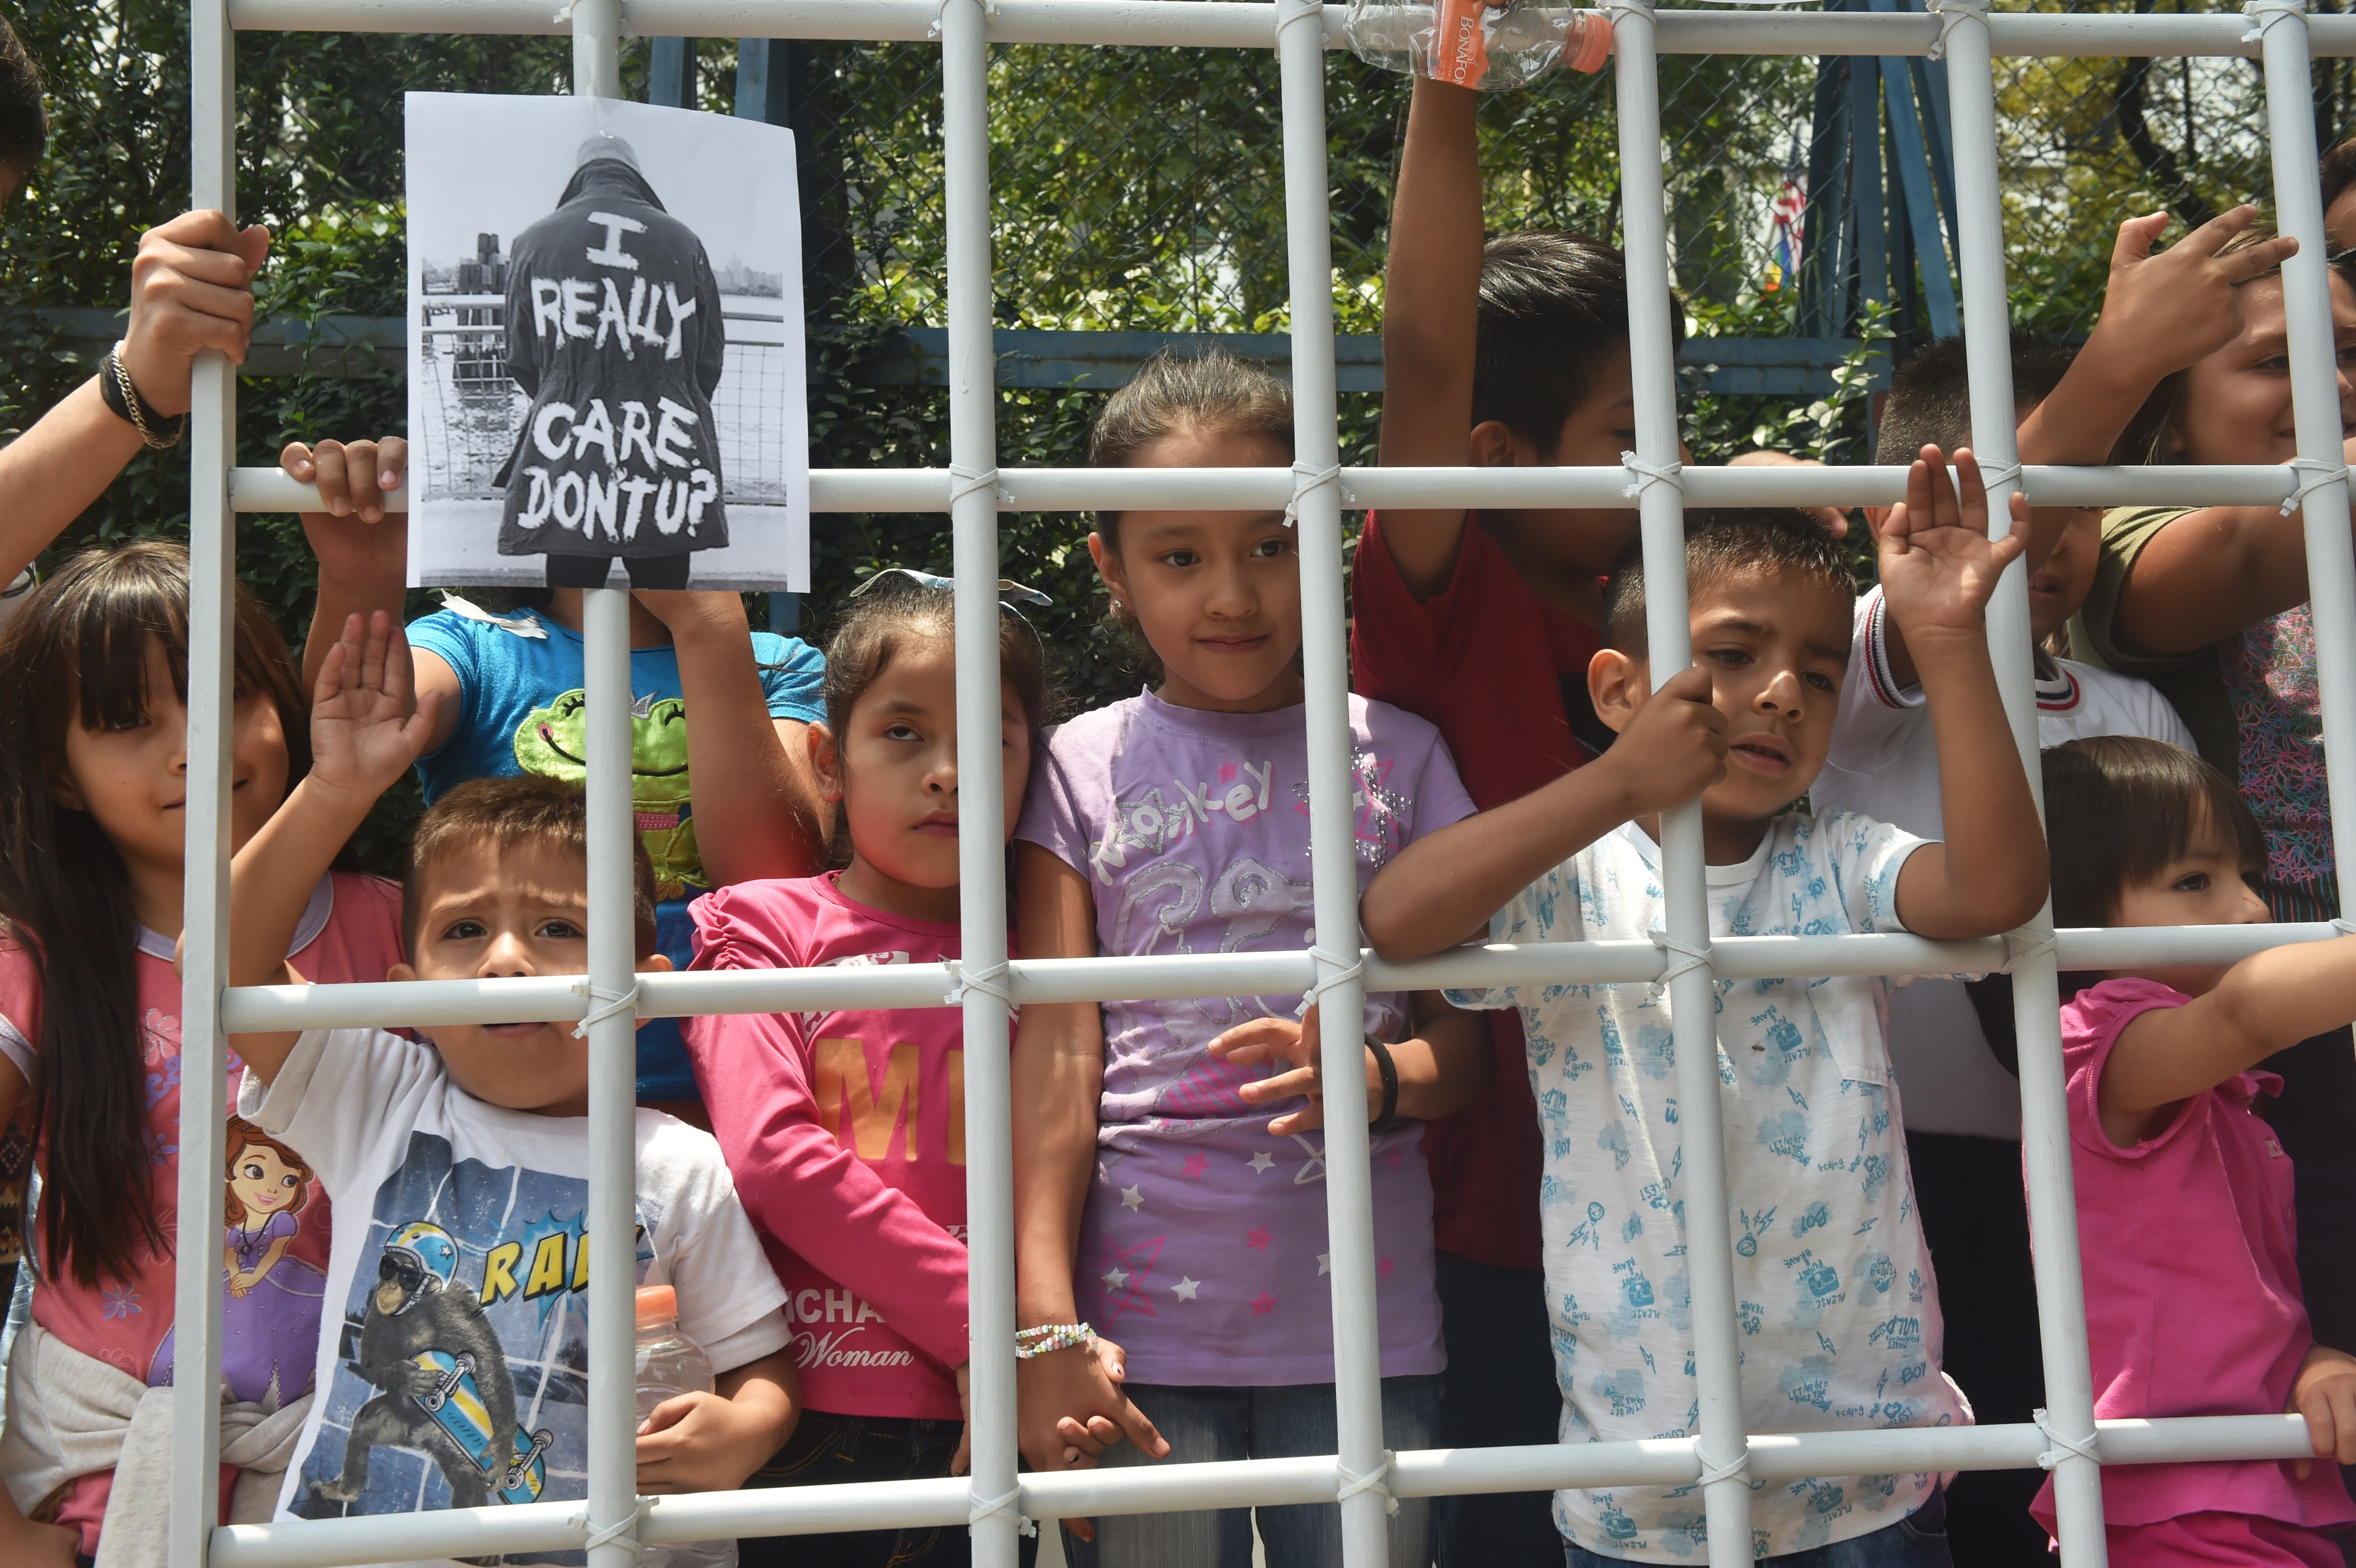 Children being held at the US-Mexico border